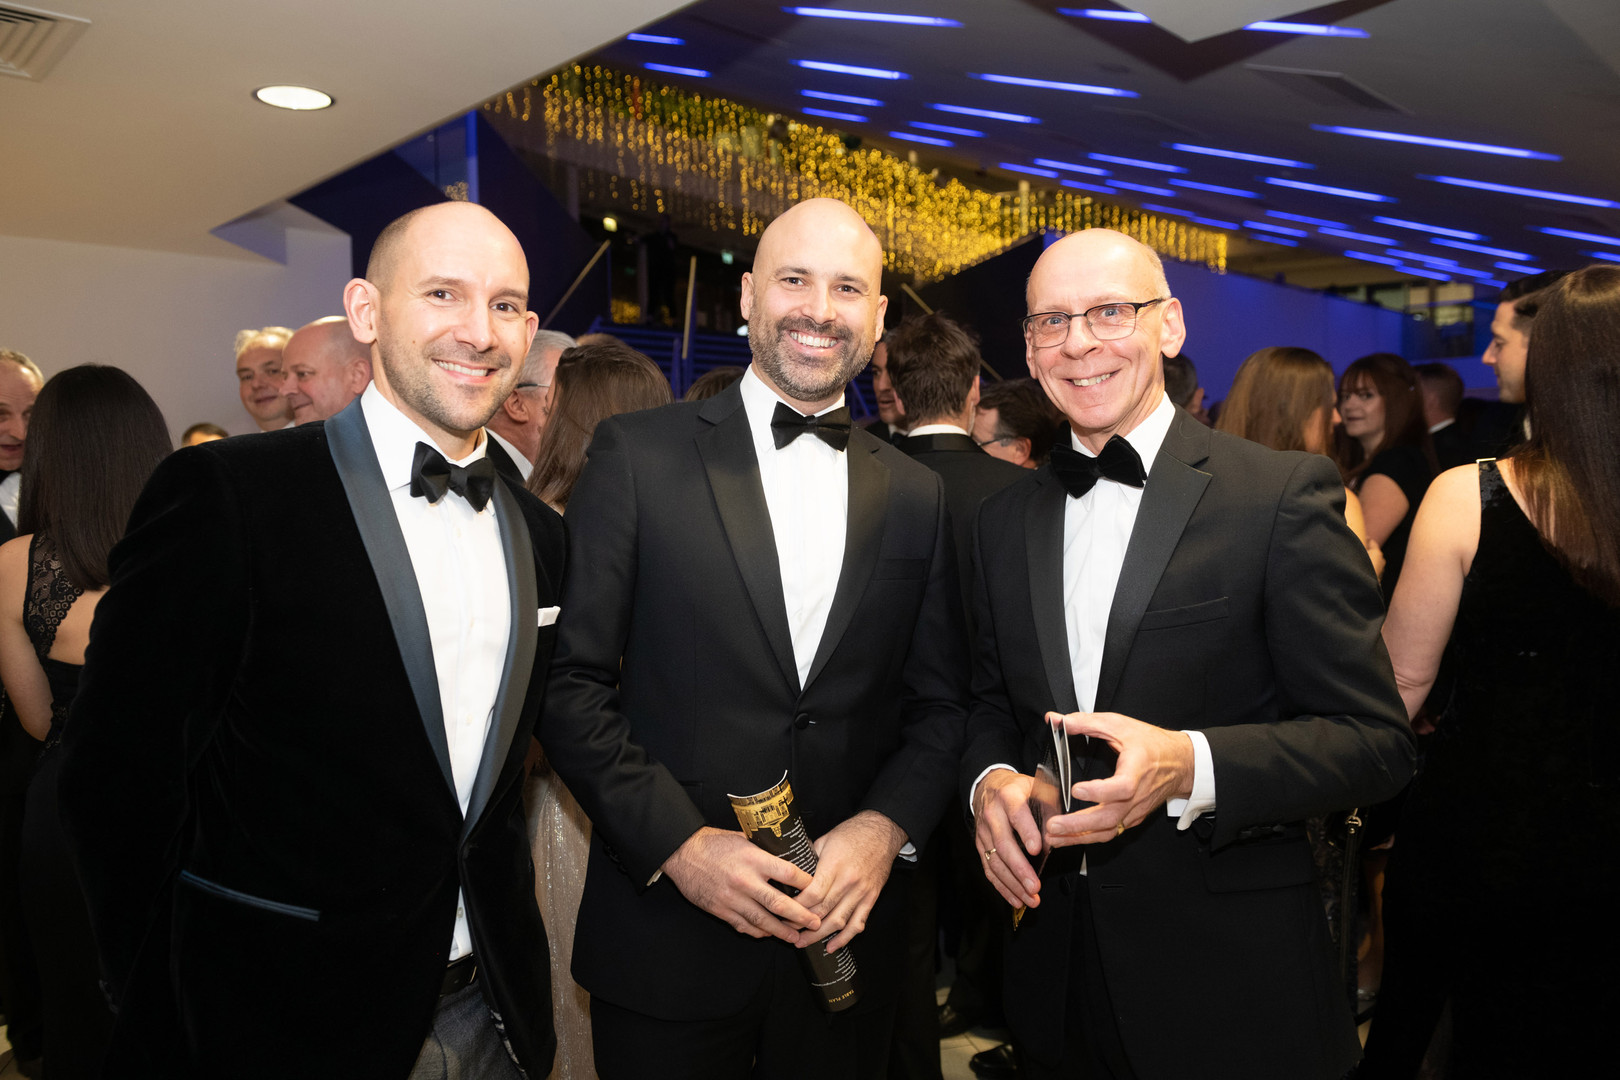 SurreyPropertyAwards_Nov2019_193.jpg